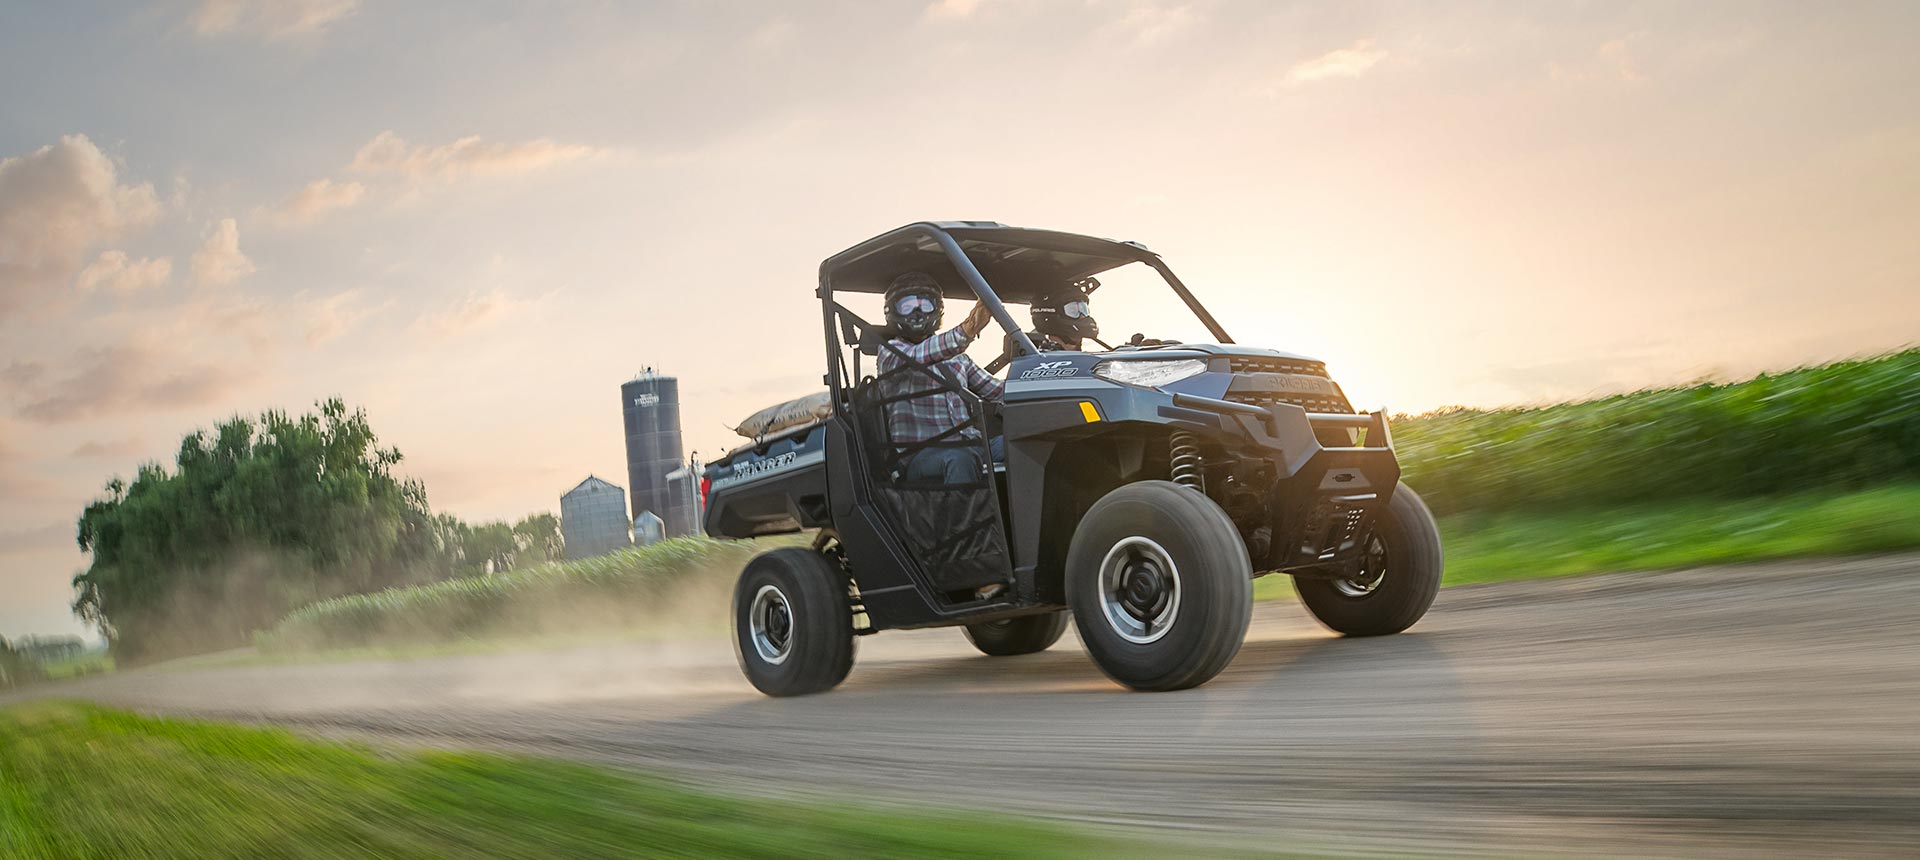 2019 Polaris Ranger XP 1000 EPS in Estill, South Carolina - Photo 11